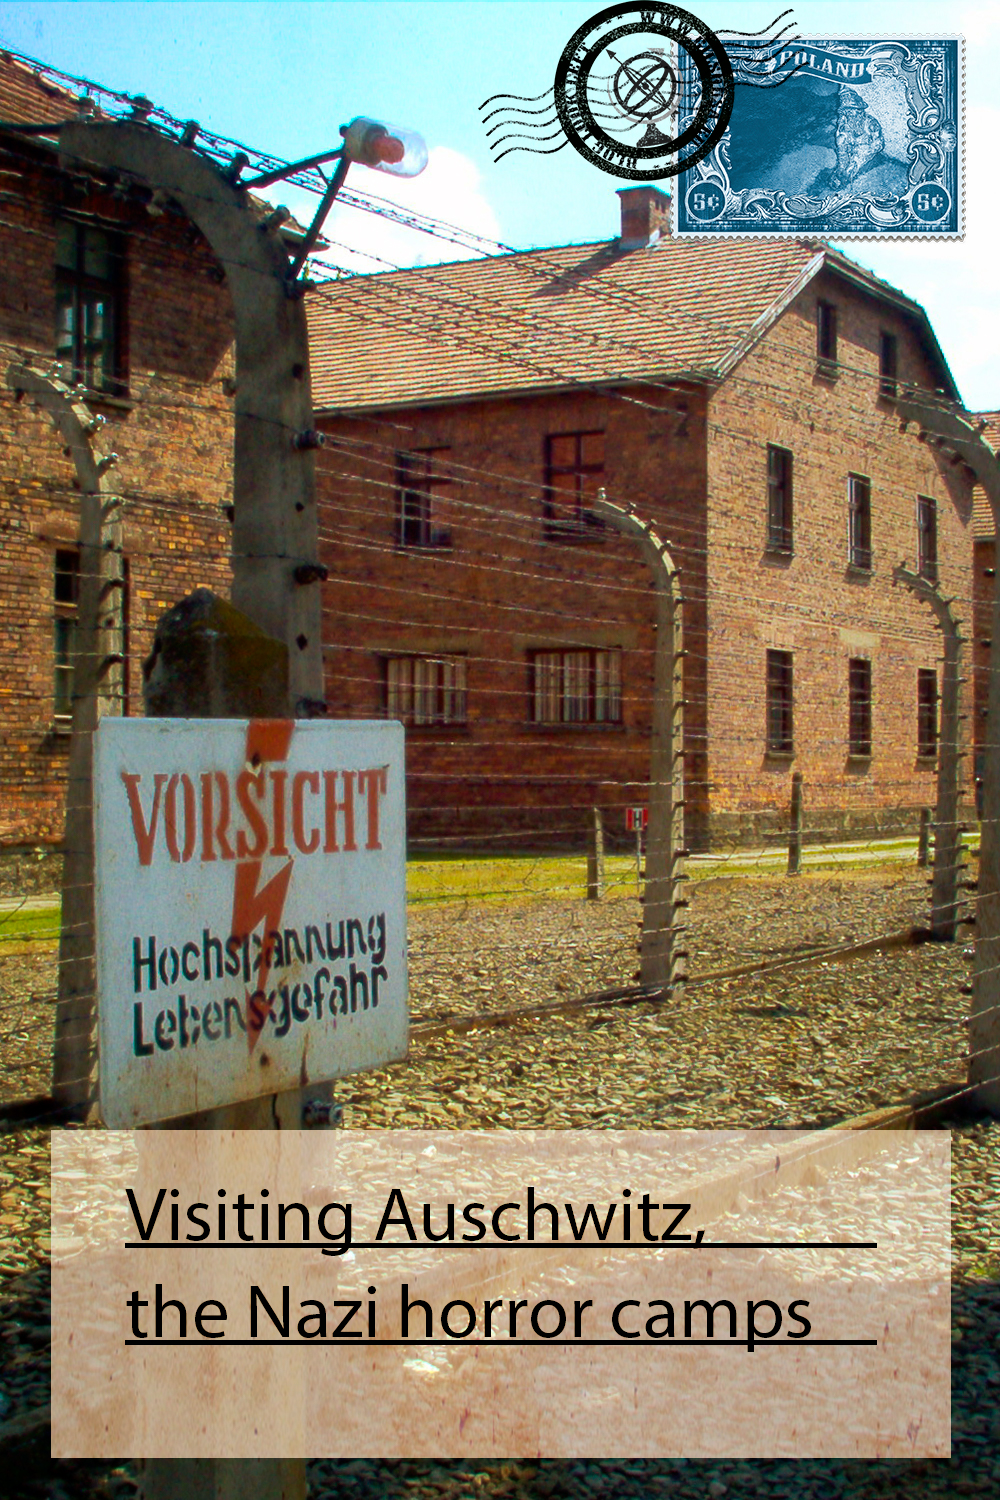 Visiting Auschwitz, the Nazi horror camps